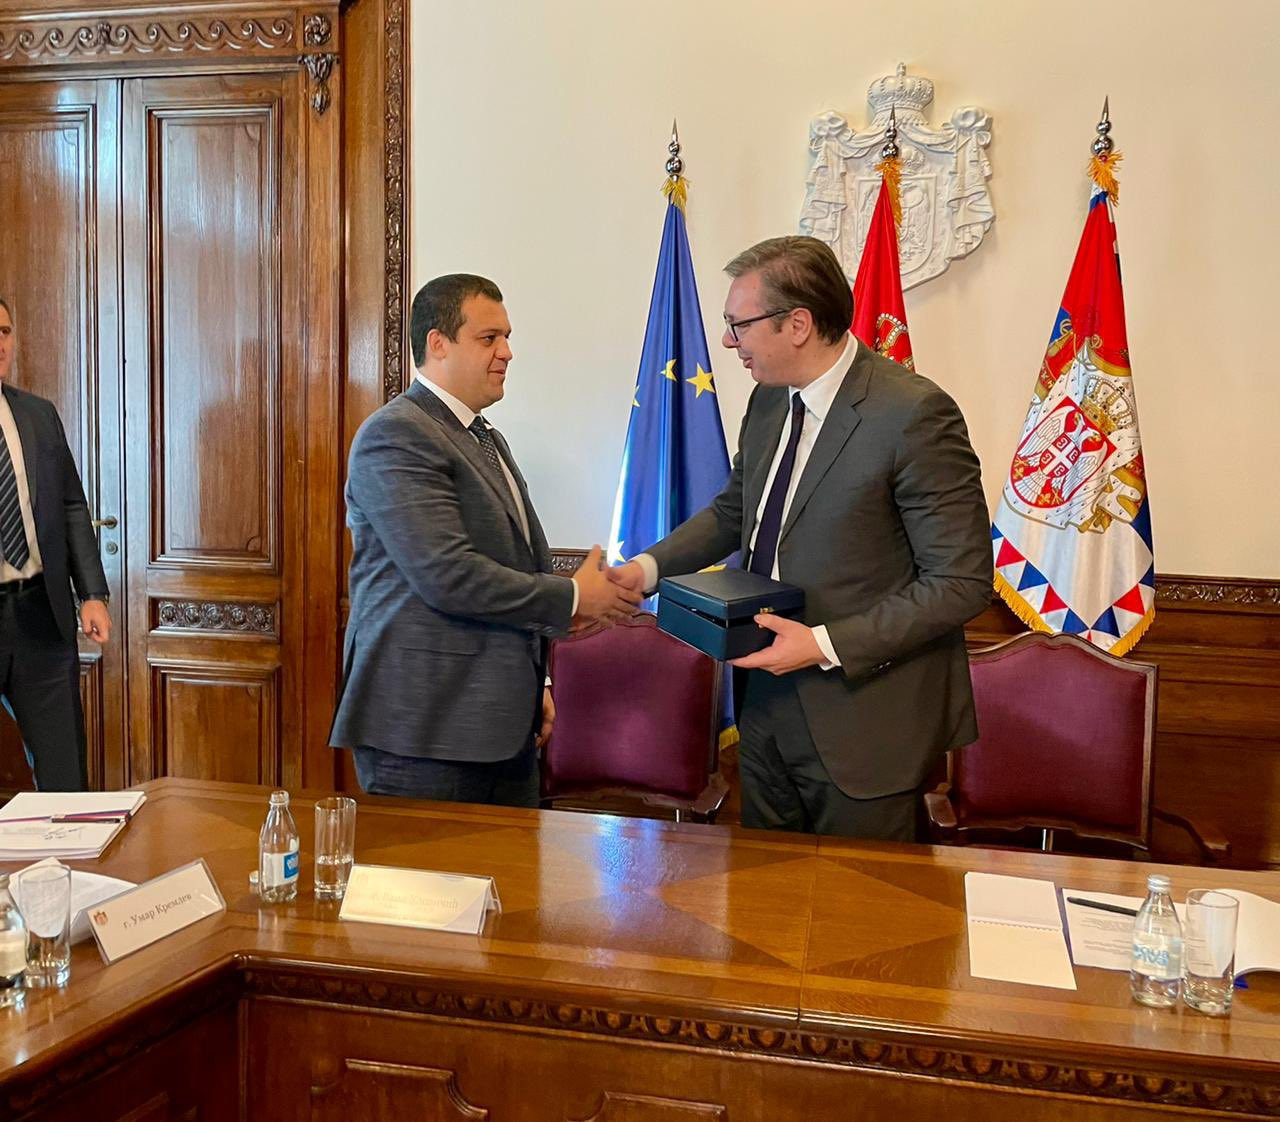 Kremlev meets Serbian President Vučić to discuss AIBA World Boxing Championships